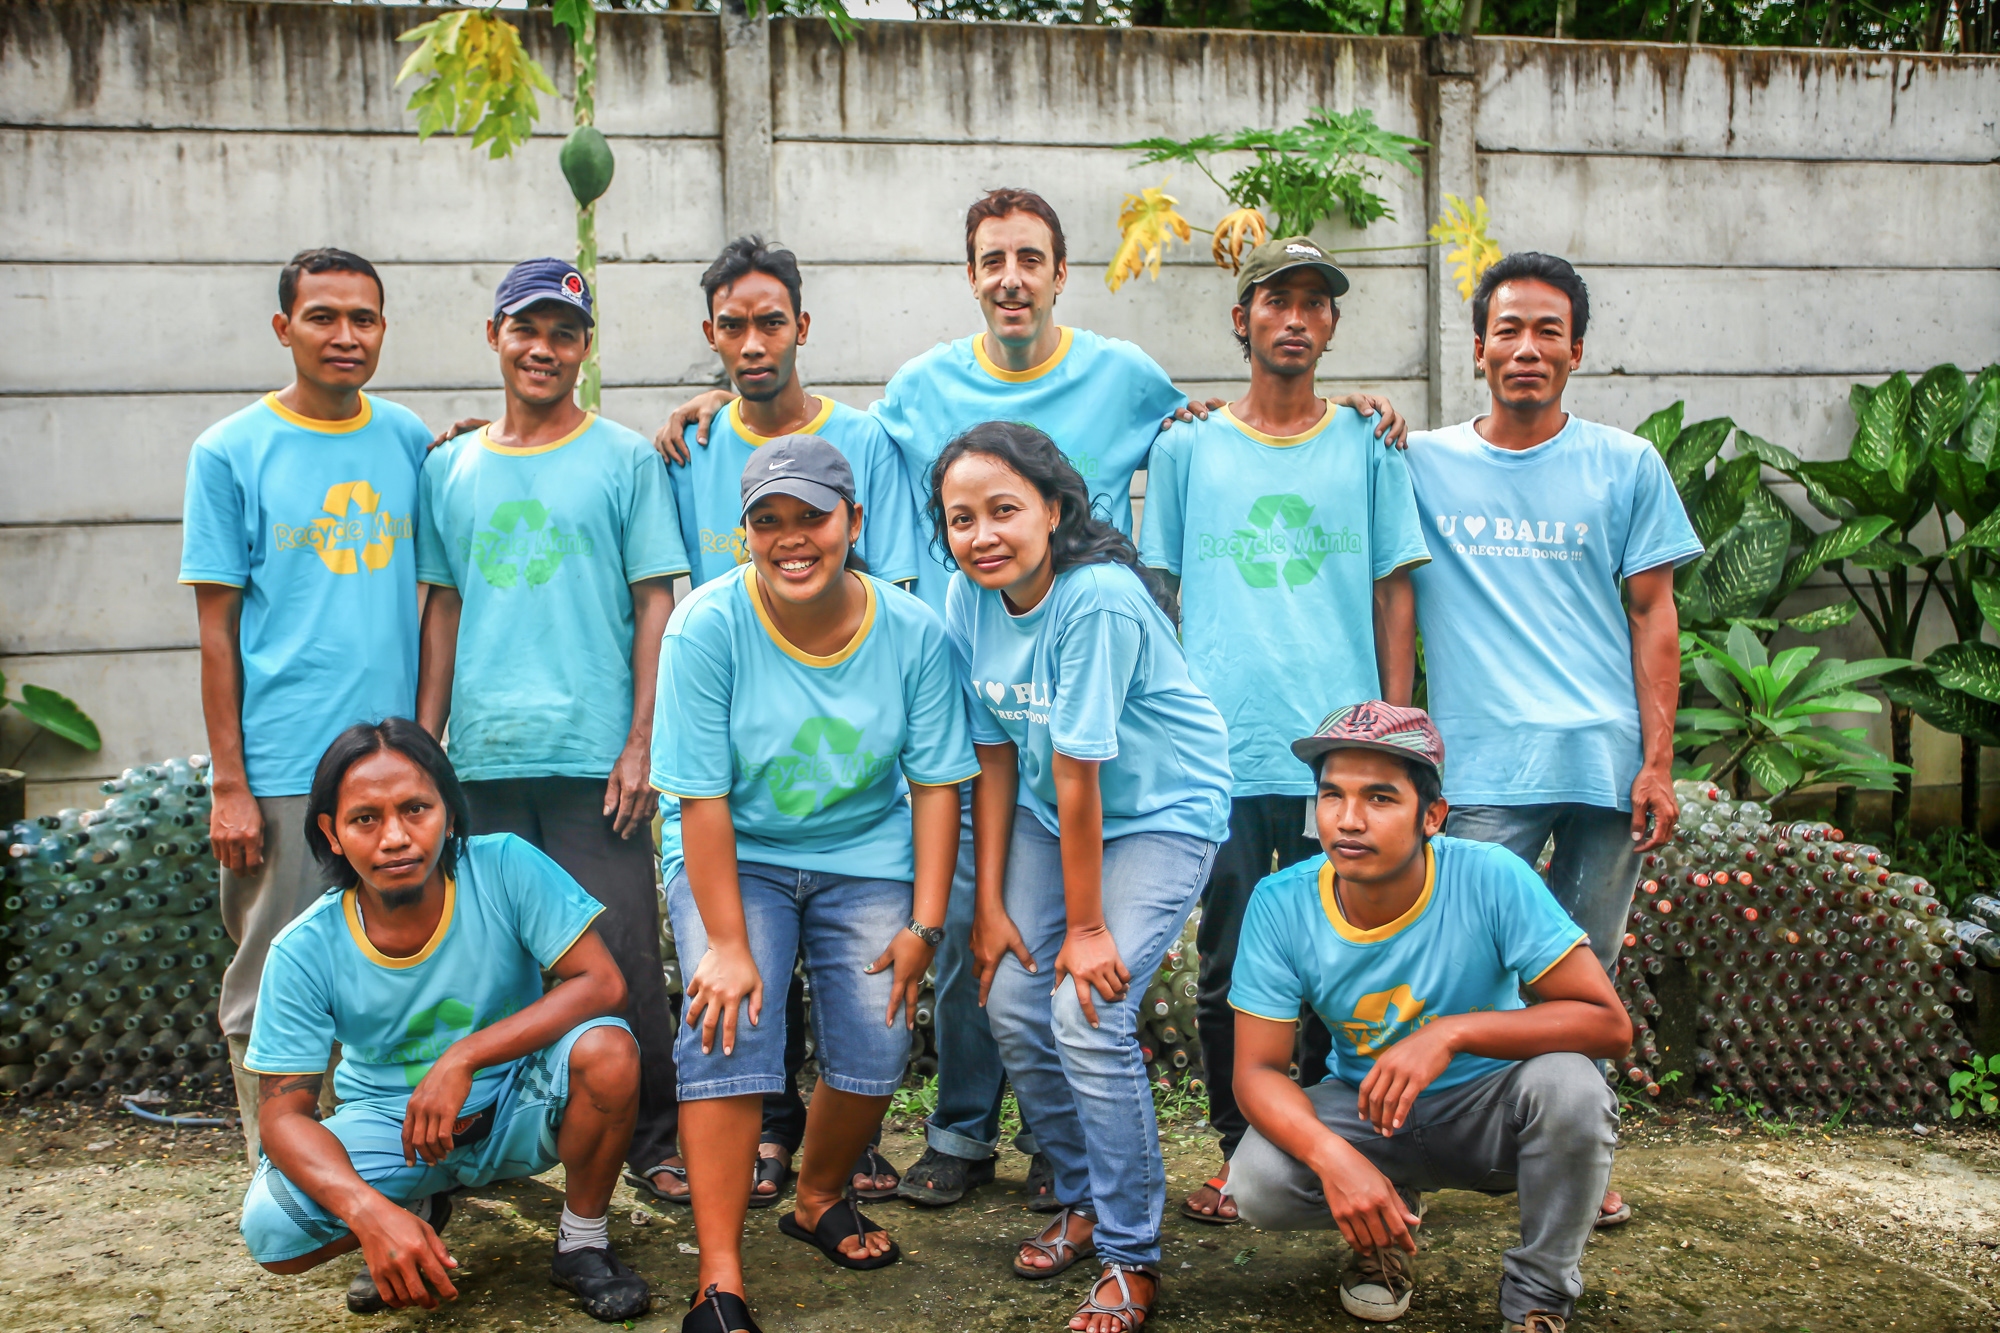 The recycling team at Peduli Bali